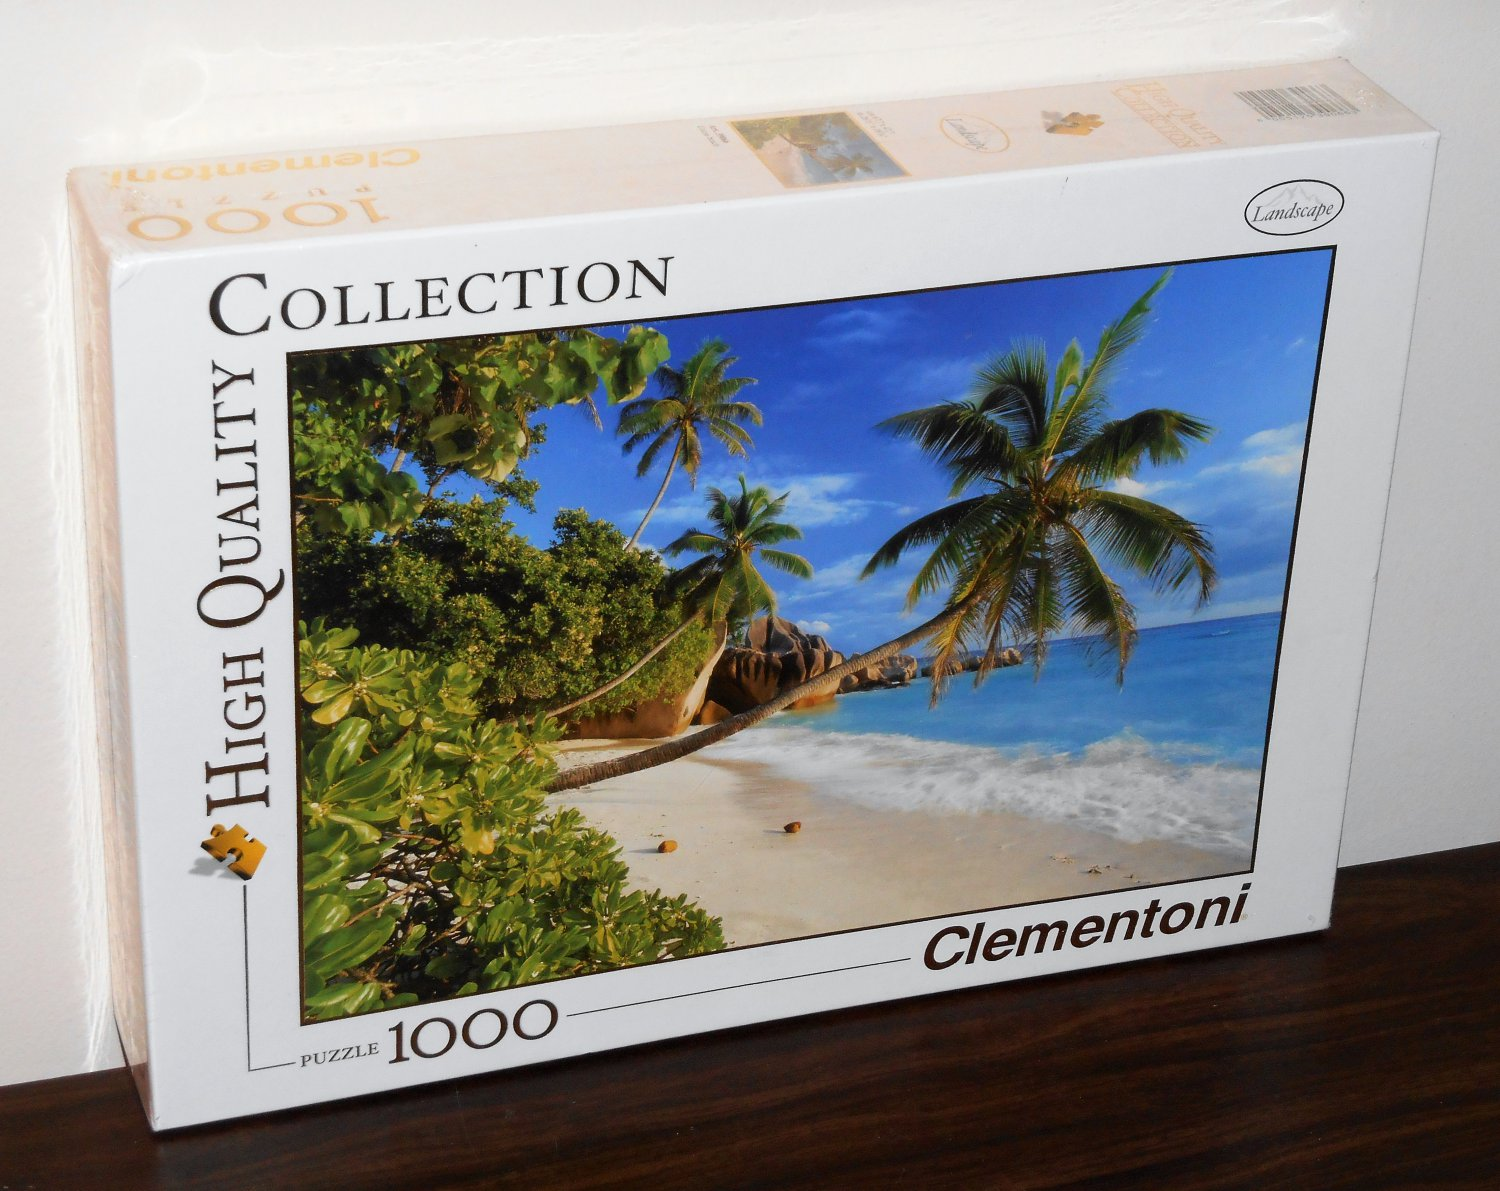 Clementoni Cocoa Beach 1000 Piece Jigsaw Puzzle High Quality Collection Landscape NIB